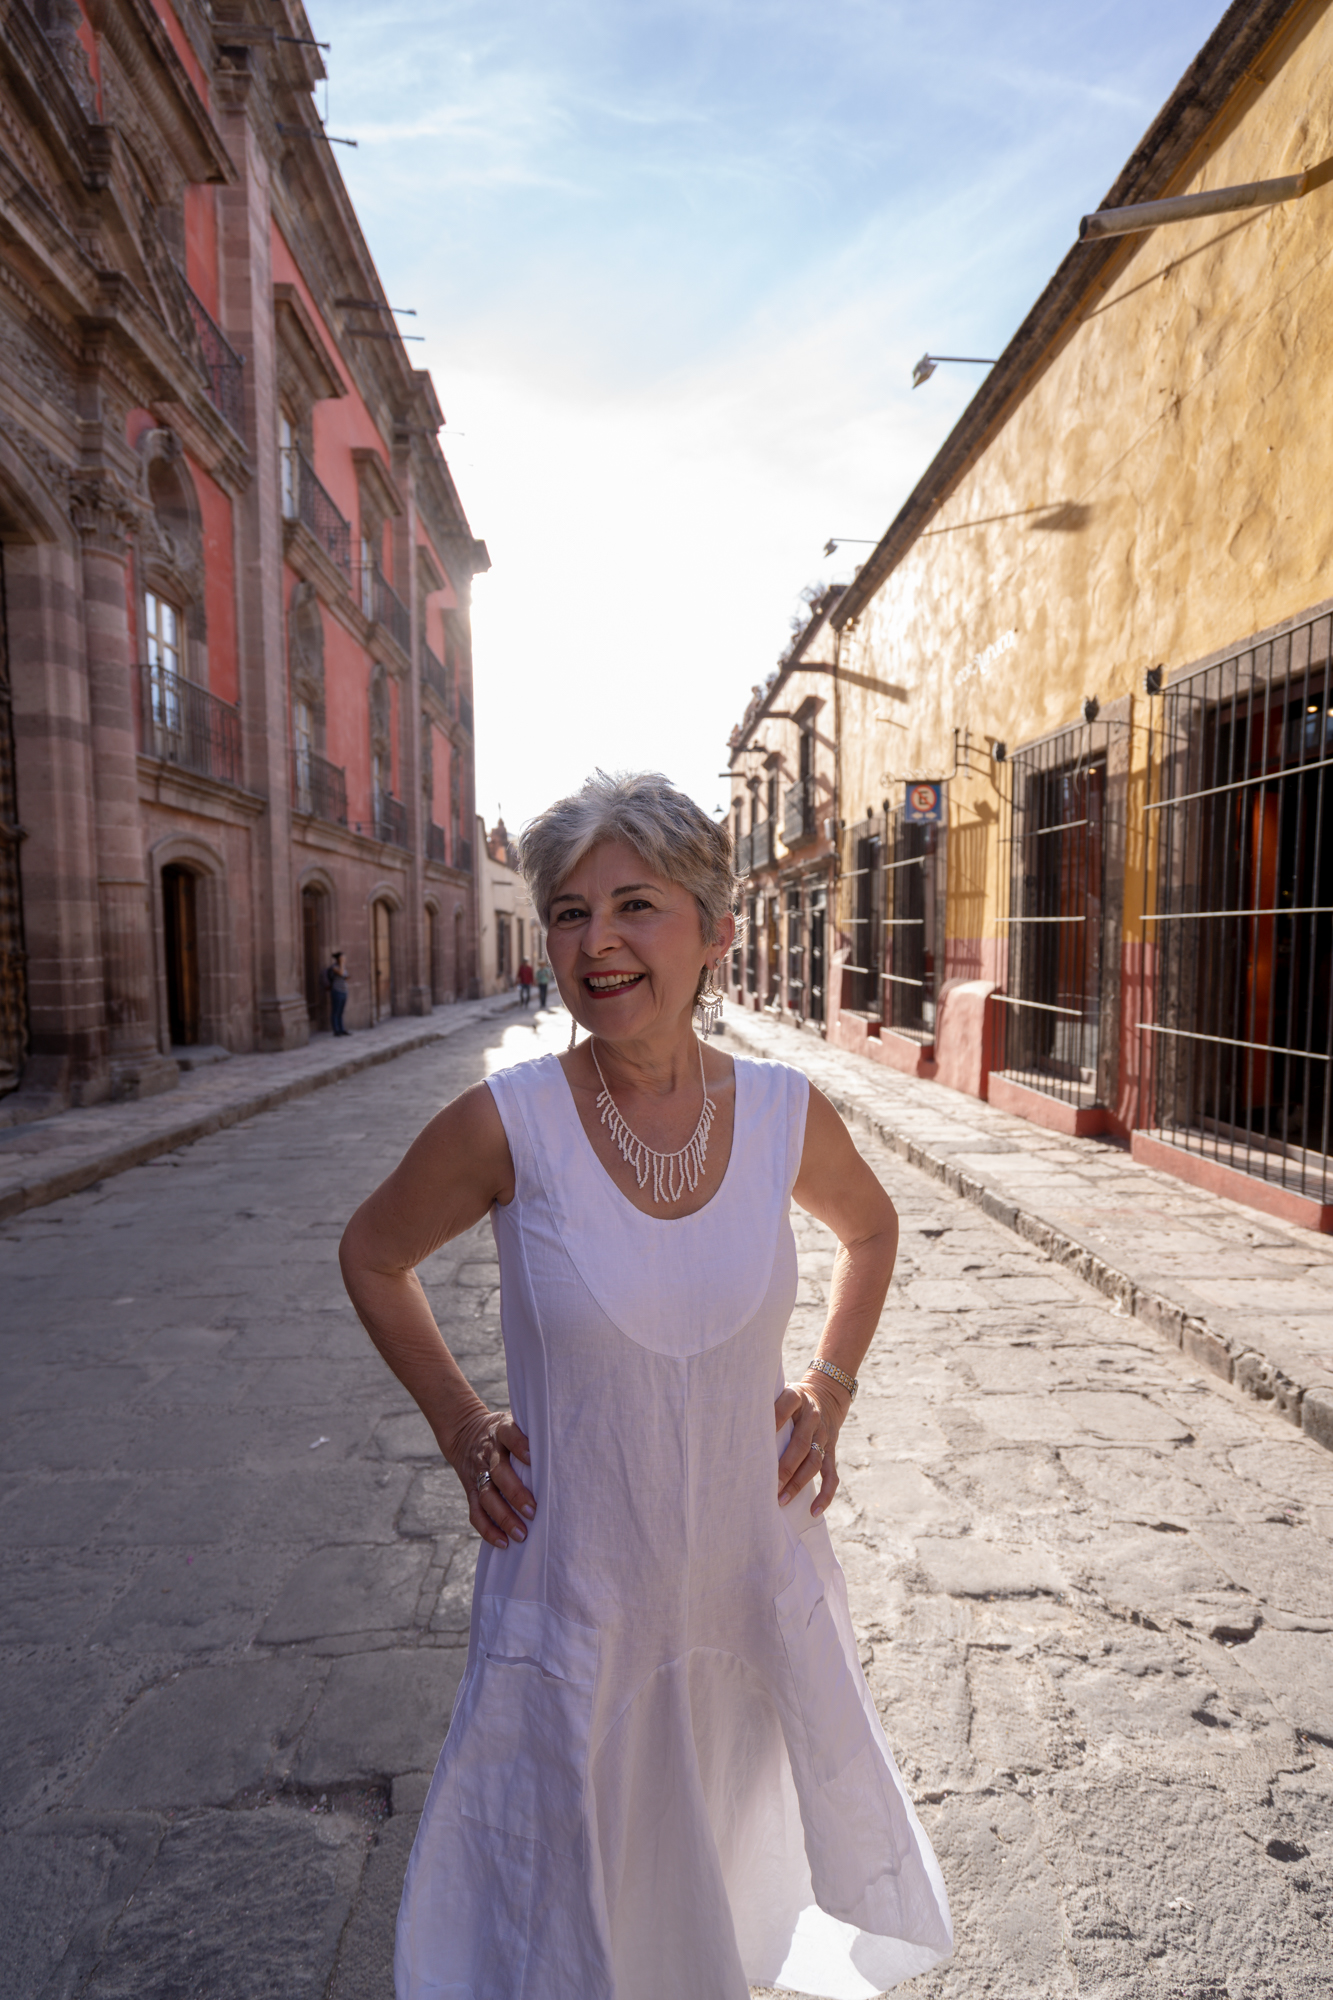 Photoshoot session in San Miguel de Allende with Suzanne and Leo-6.jpg